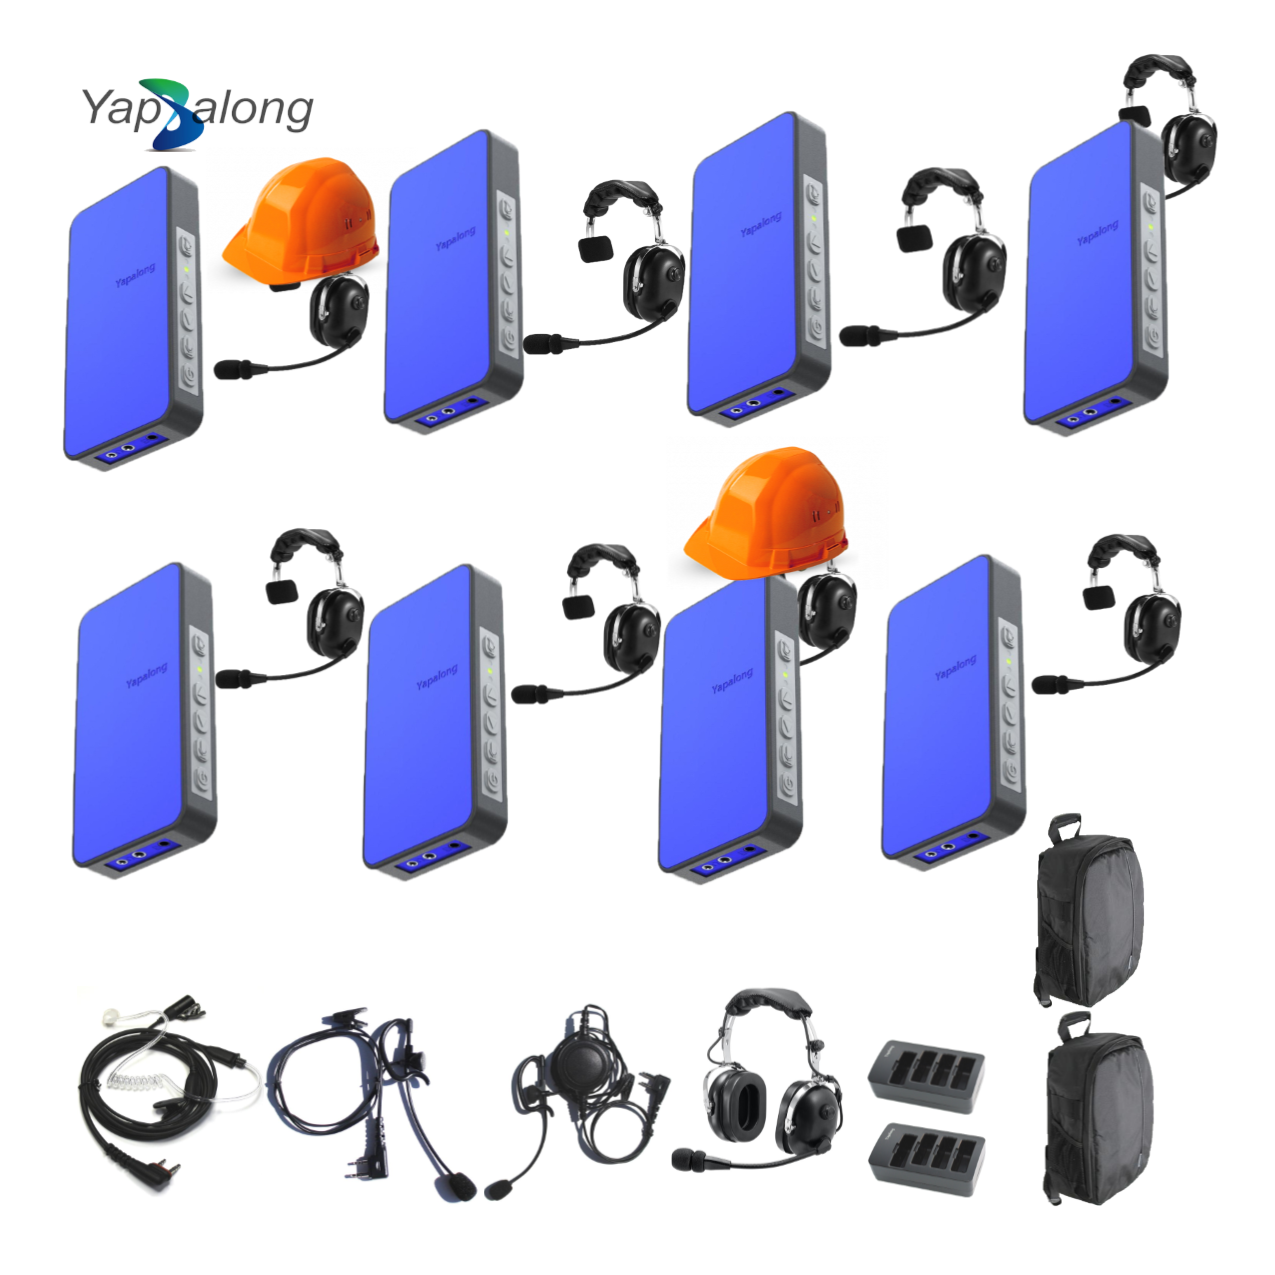 Yapalong 5000 (8-User) Industrial Complete Set Intercom Systems Intercom Systems